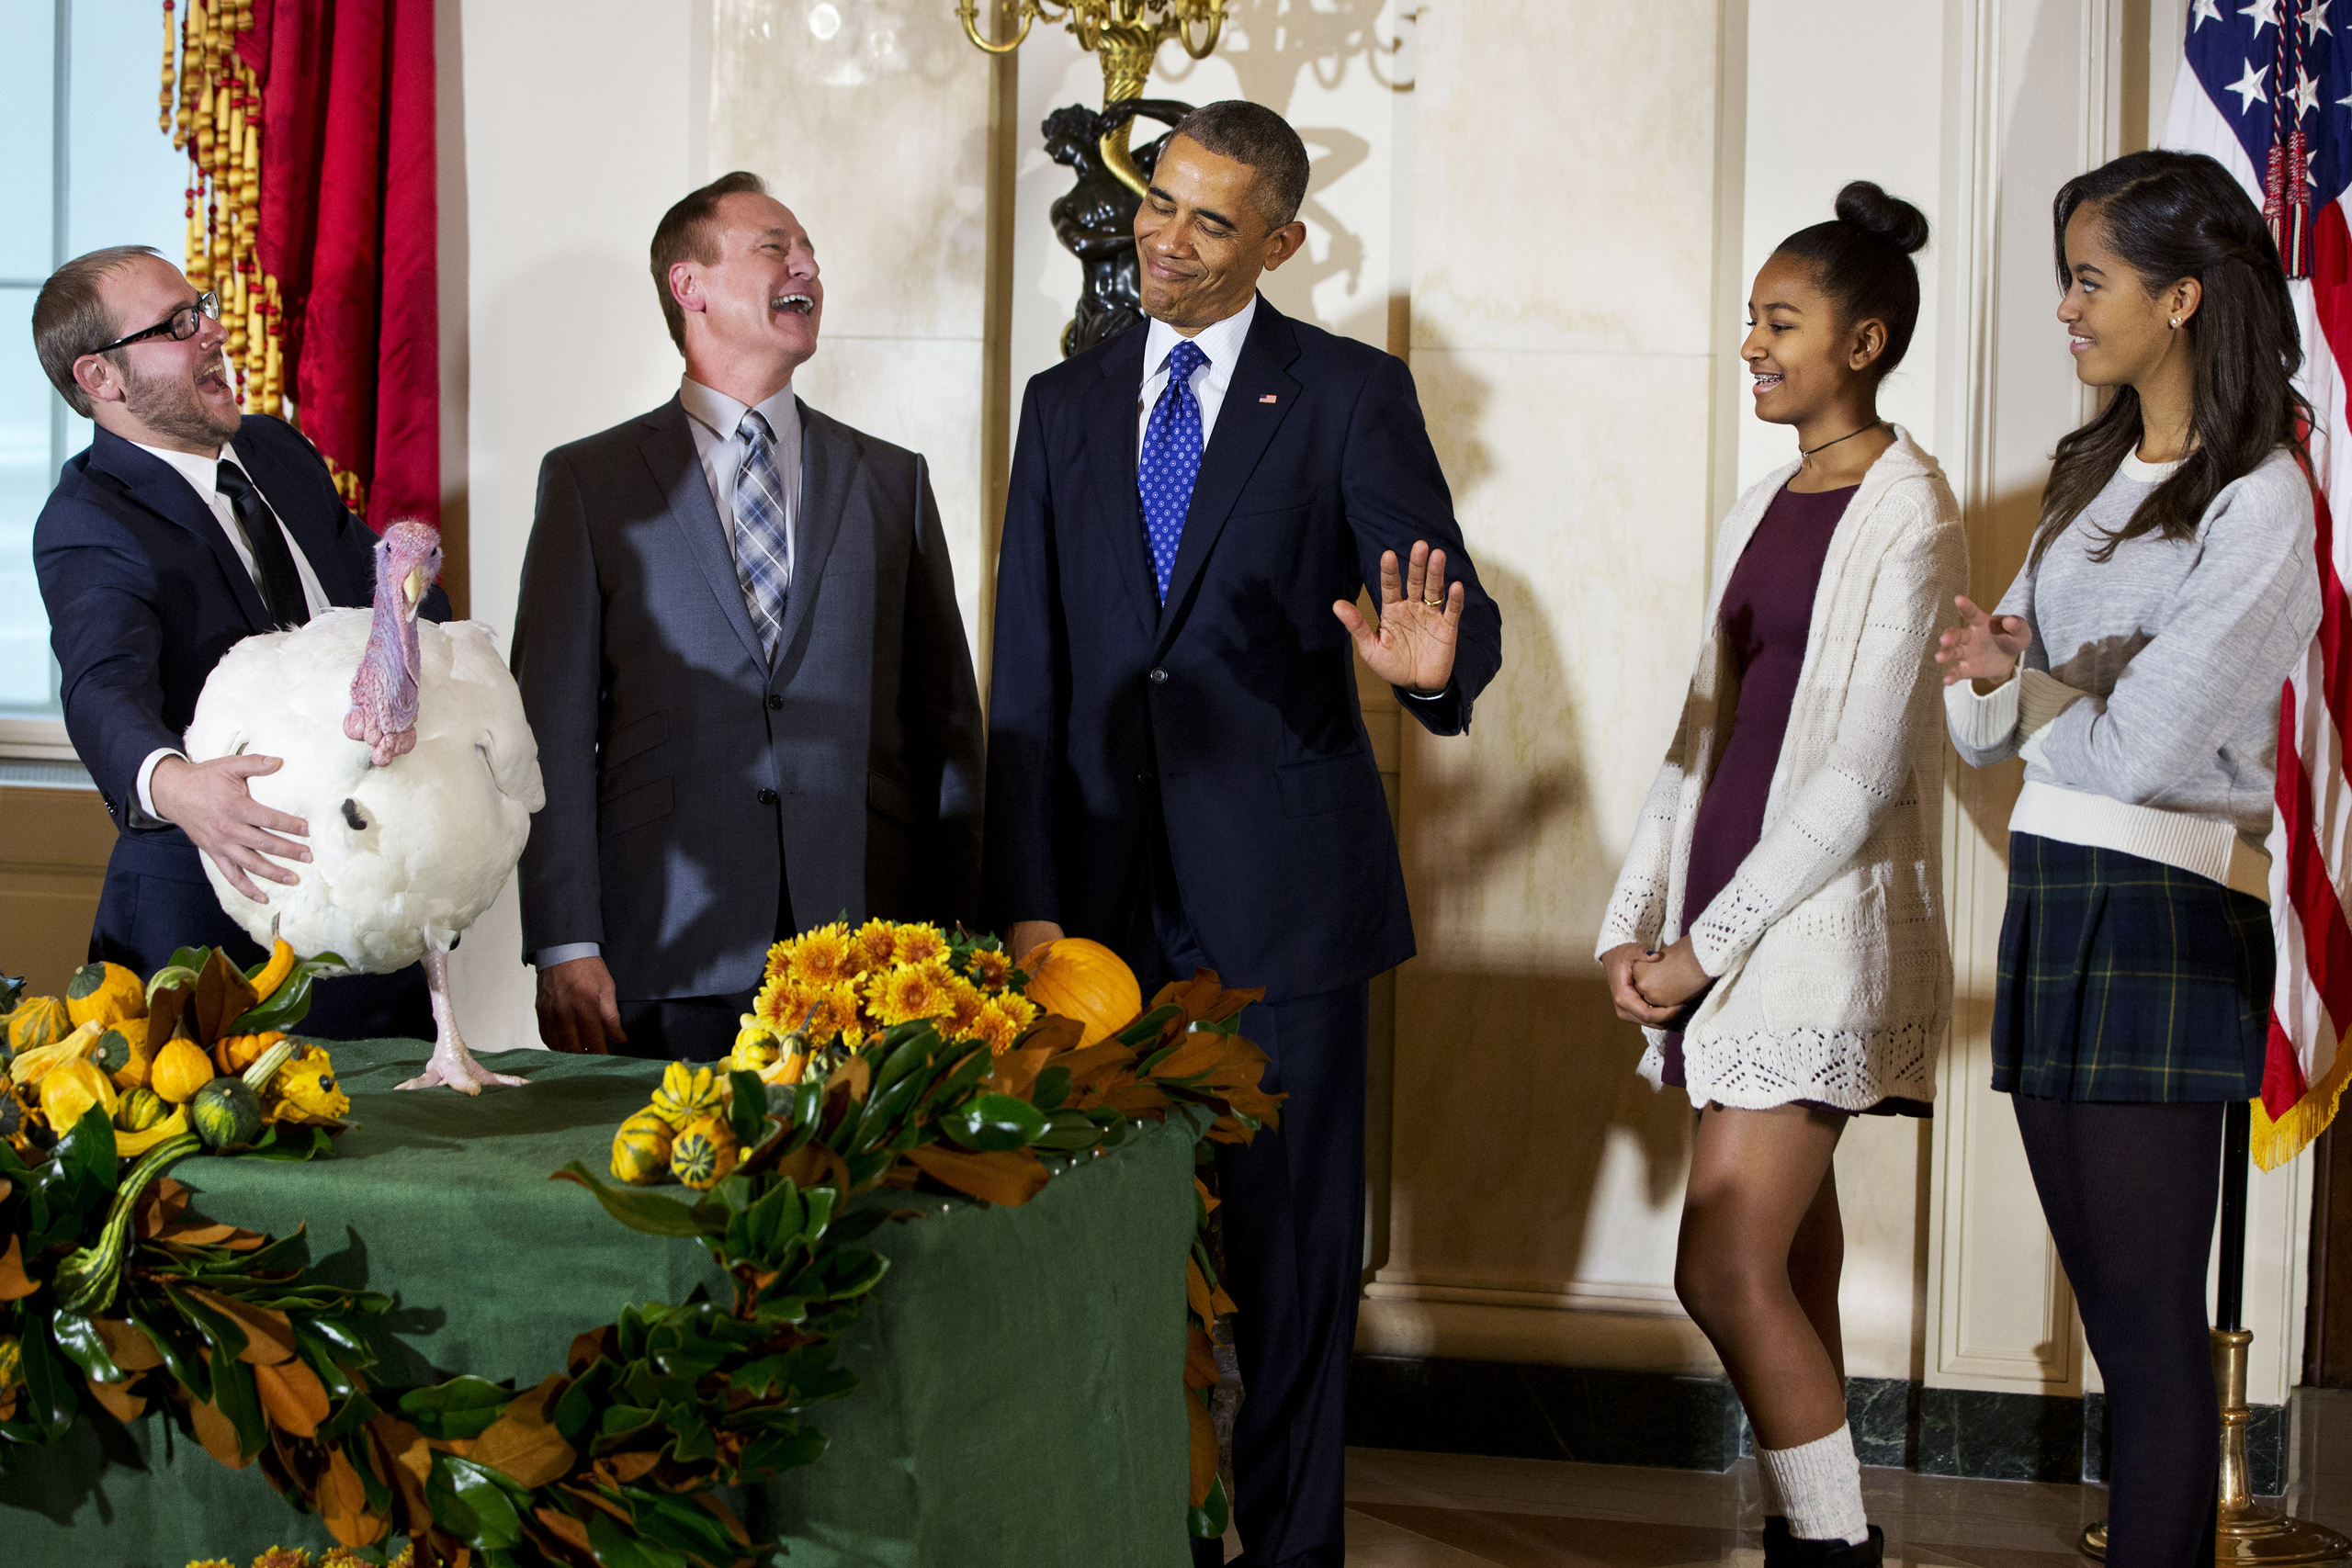 Obama gestures that his daughters Sasha and Malia would rather pass on touching  Cheese  the turkey during a ceremony at the White House on Nov. 26, 2014.